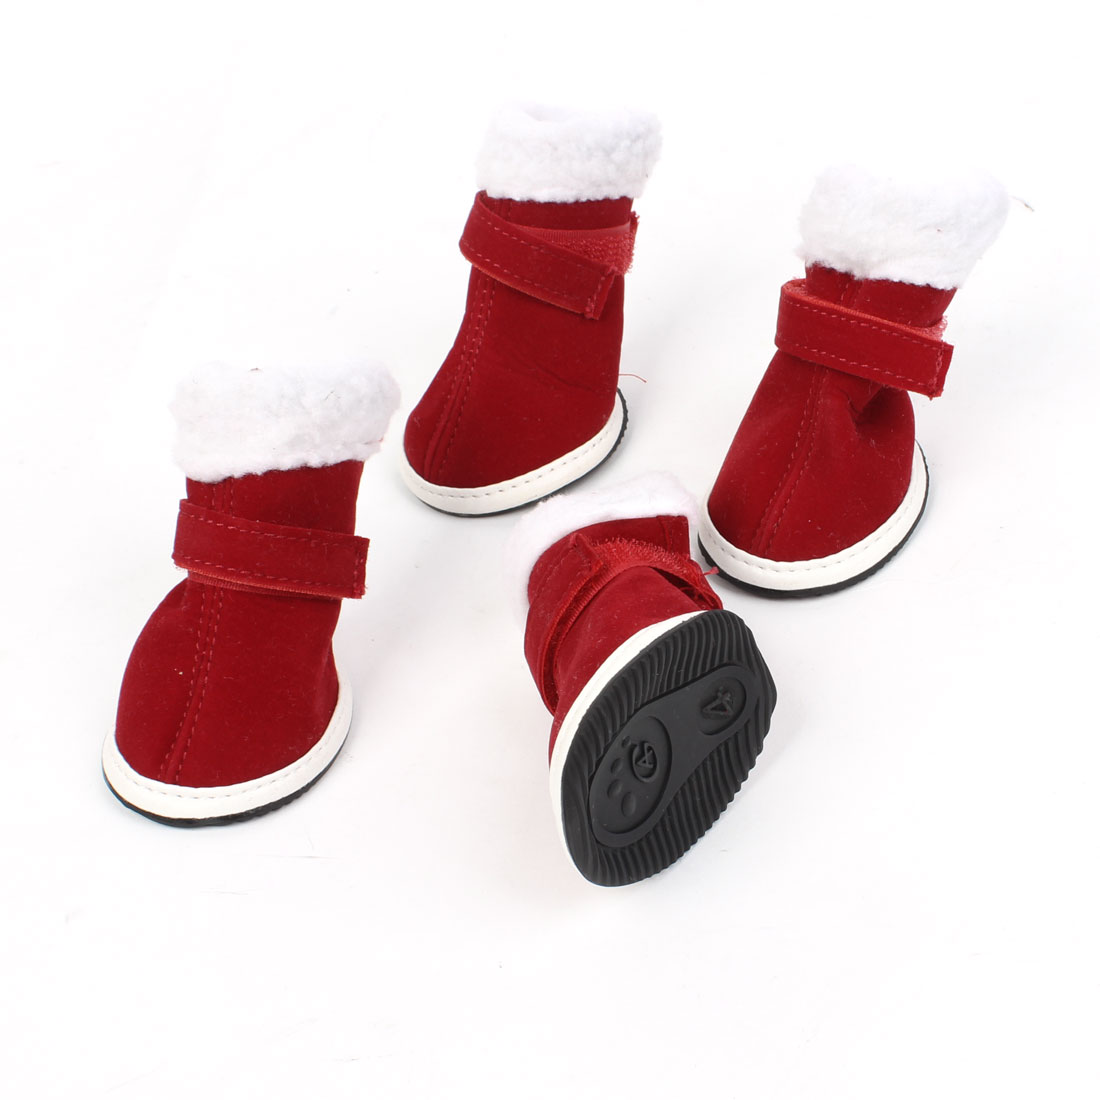 2 Pairs White Plush Brim Burgundy Christmas Pet Doggie Shoes Boots Booties XXS